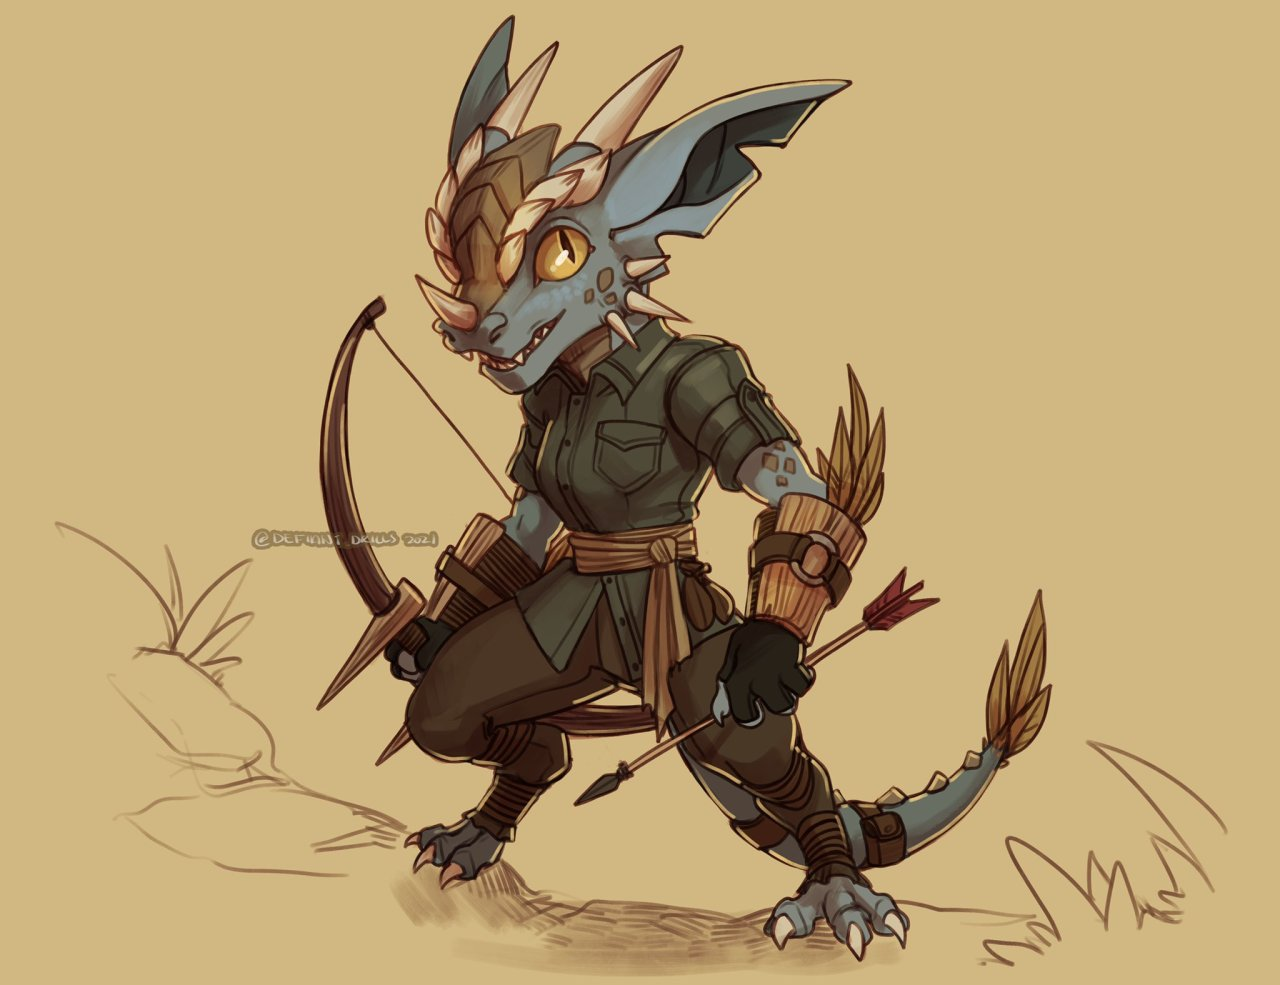 Redesigned an old character of mine. She's a kobold now. #kobold#dnd #Dungeons and Dragons #fantasy#character design#my oc#digital art